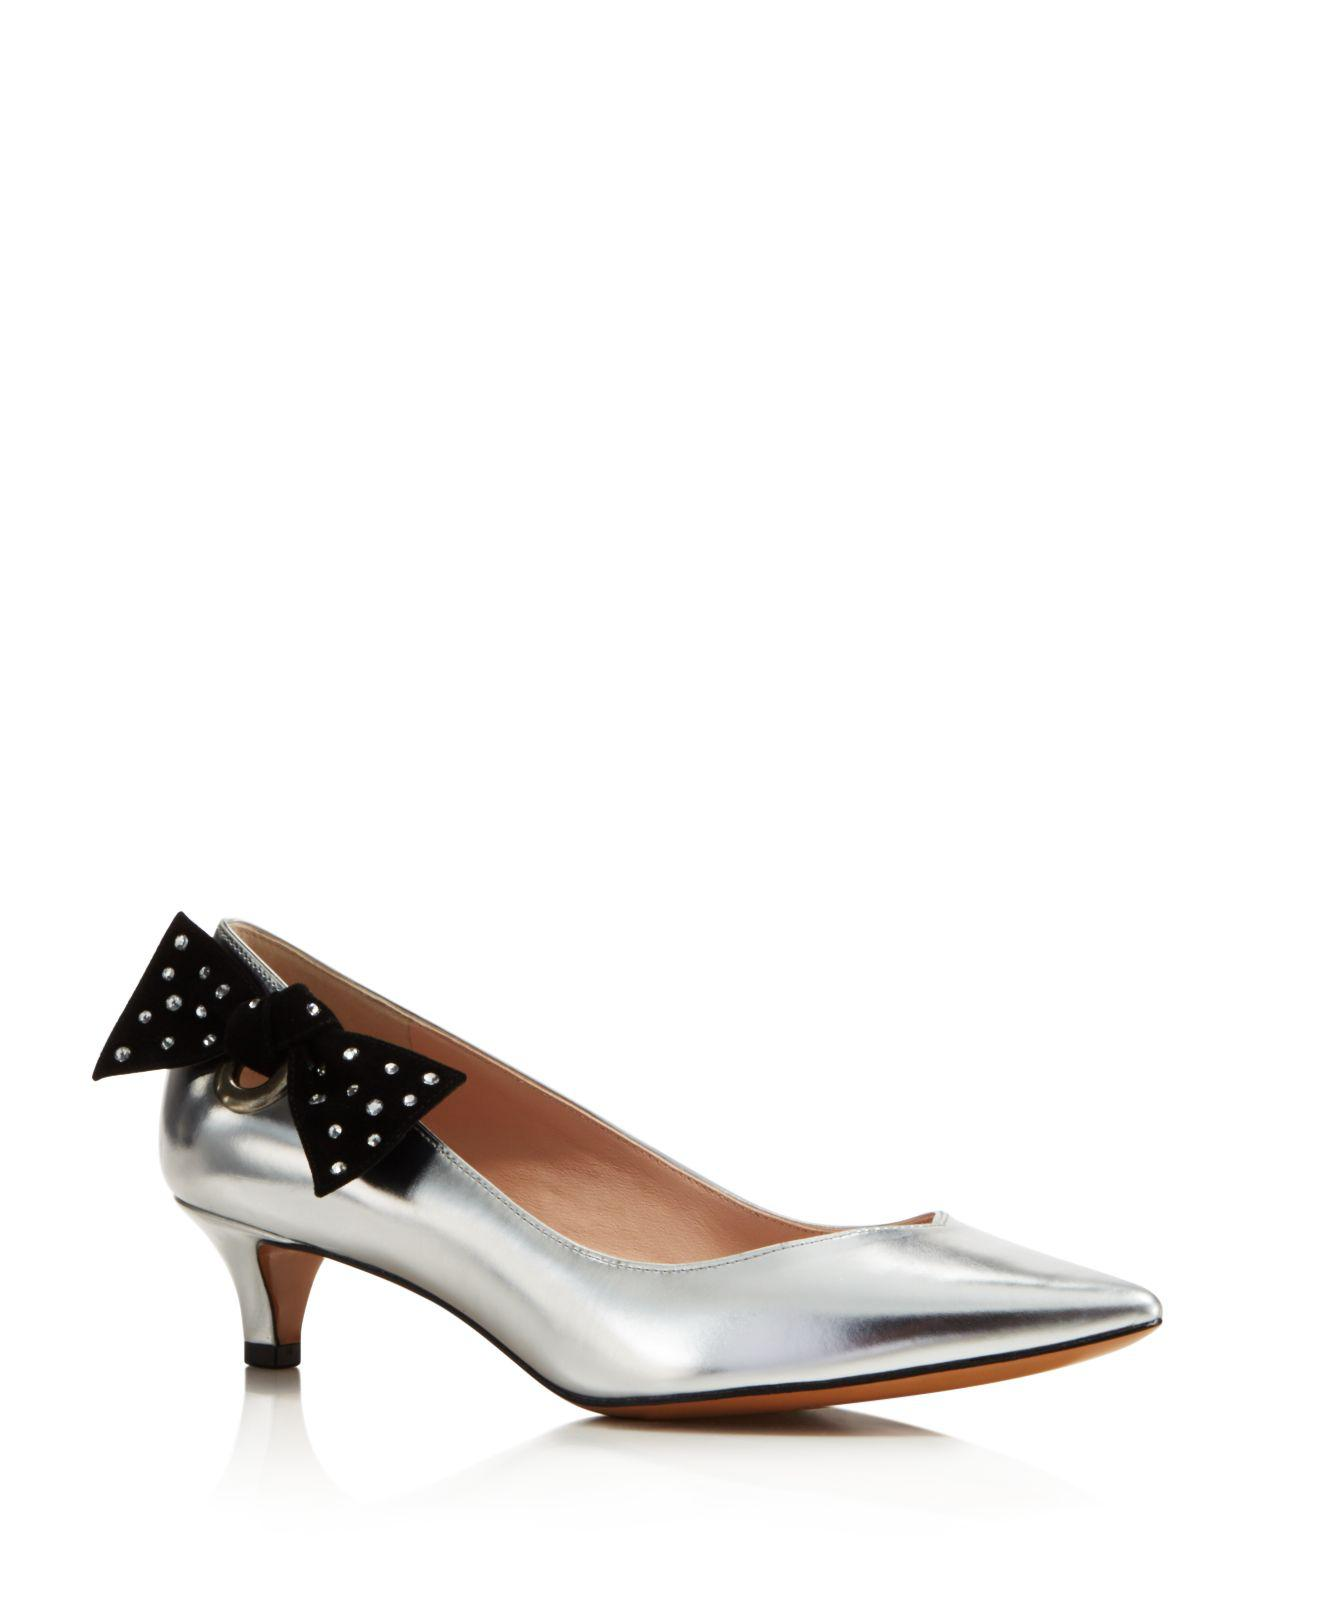 Kitten heels are back – Marc Jacobs style